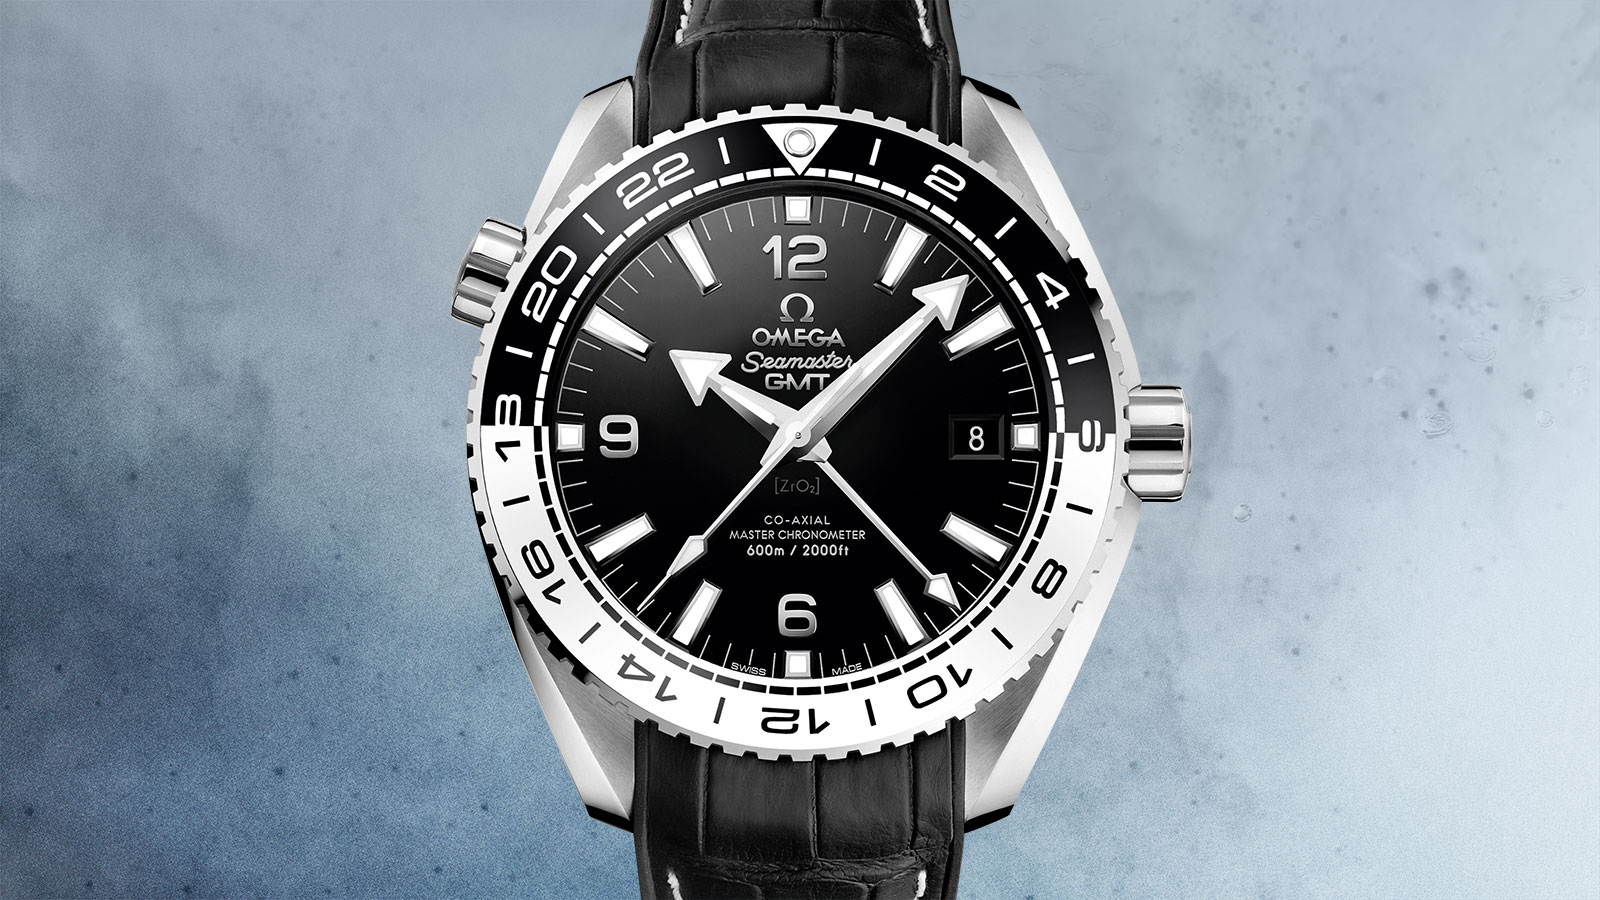 Seamaster Planet Ocean 600M Planet Ocean 600M Omega Co‑axial Master Chronometer GMT 43.5 mm Watch - 215.33.44.22.01.001